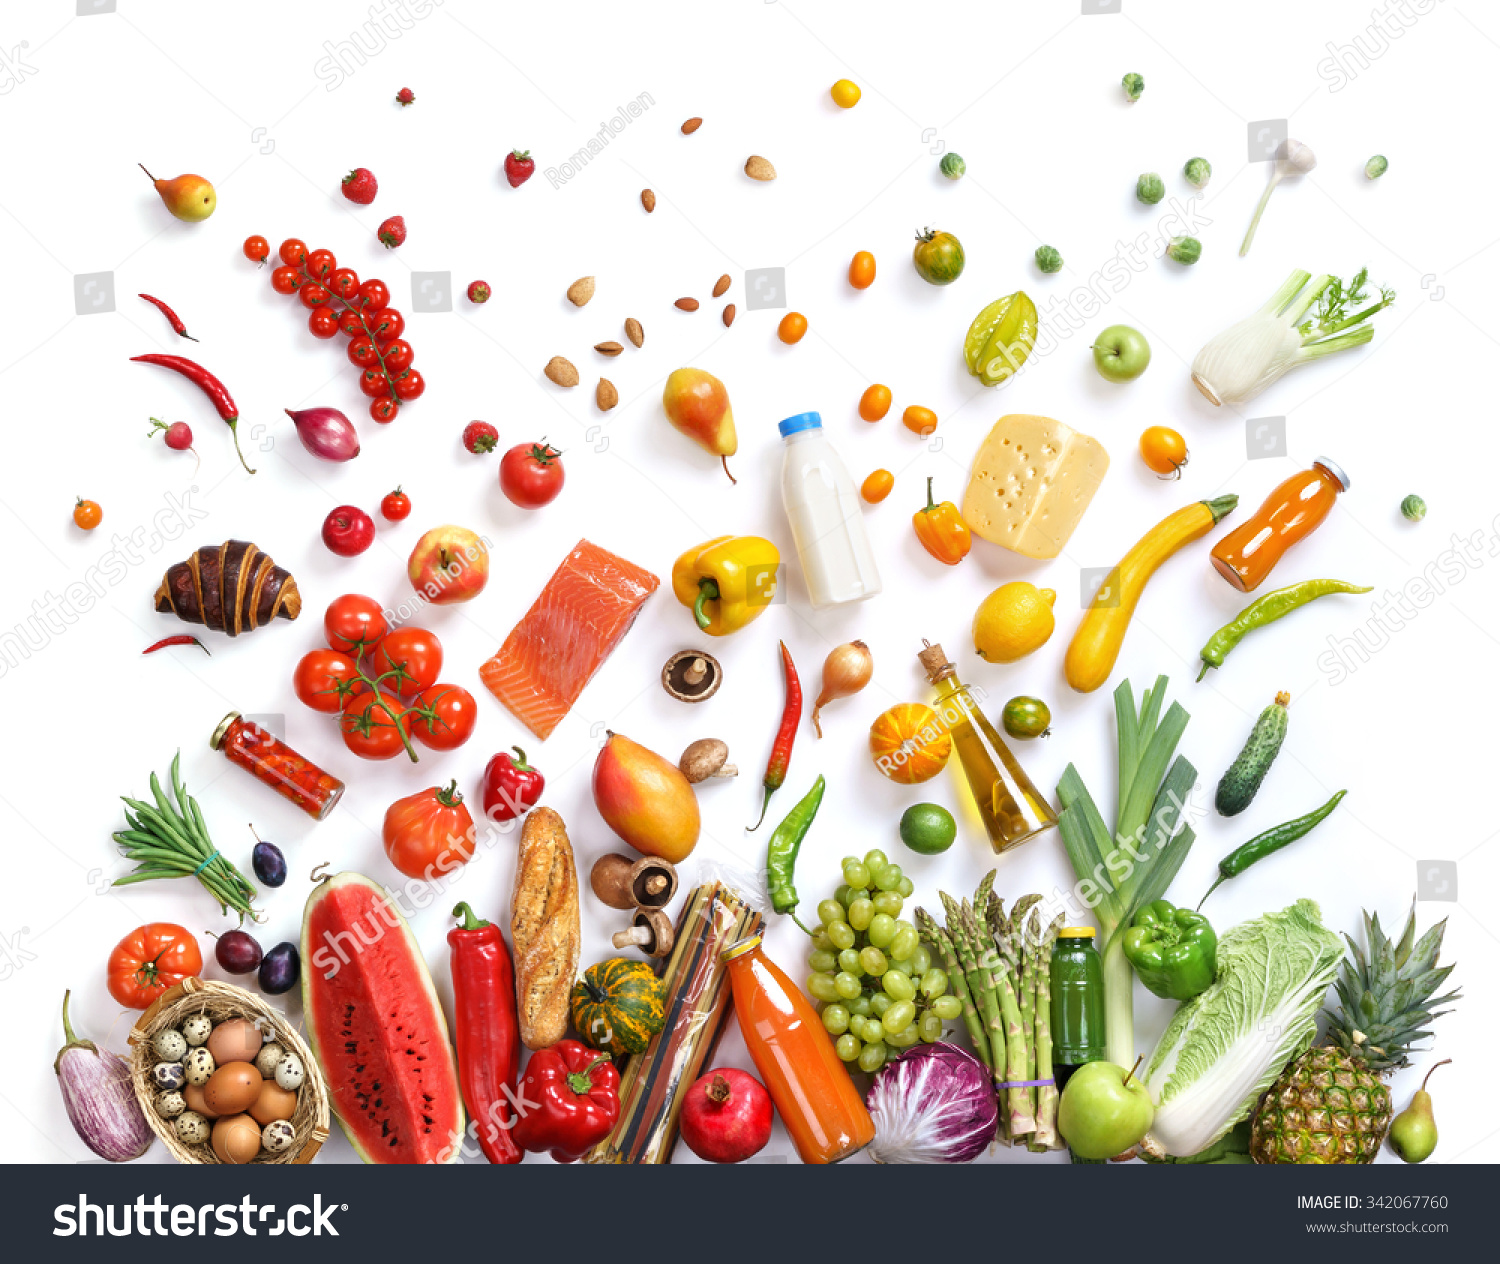 Food background studio photo of different fruits and vegetables - Healthy Eating Background Studio Photography Of Different Fruits And Vegetables Isoleted On White Backdrop